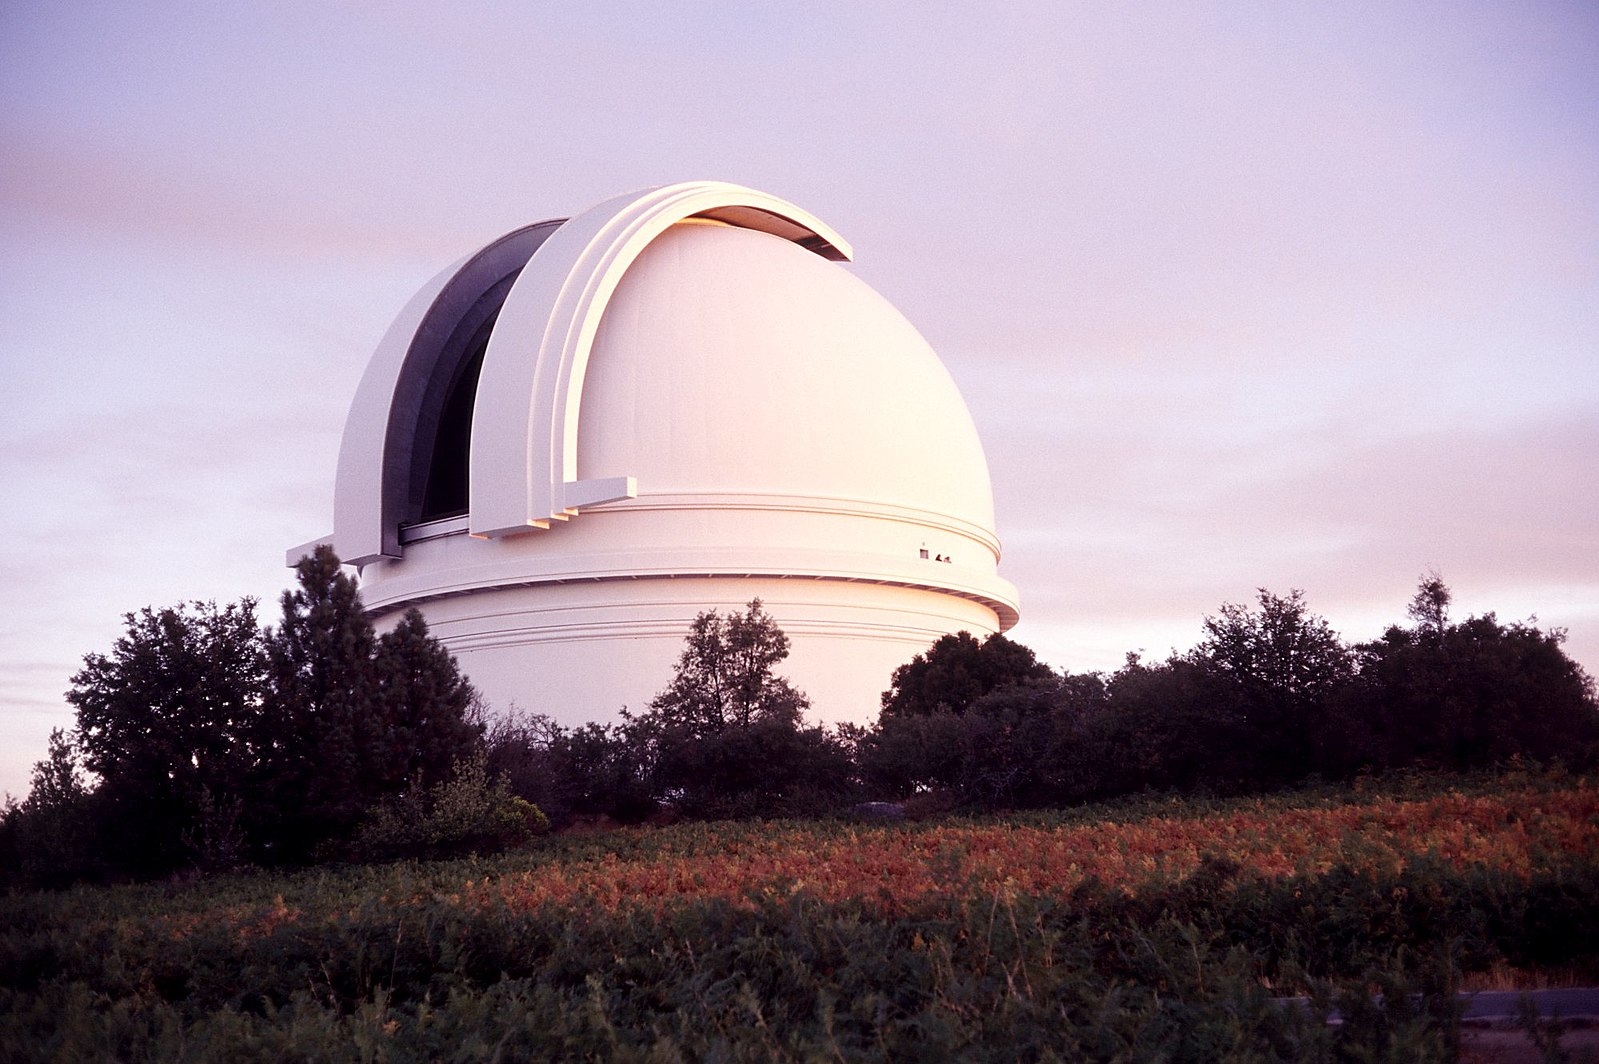 The Hale Telescope dome at the Palomar Observatory